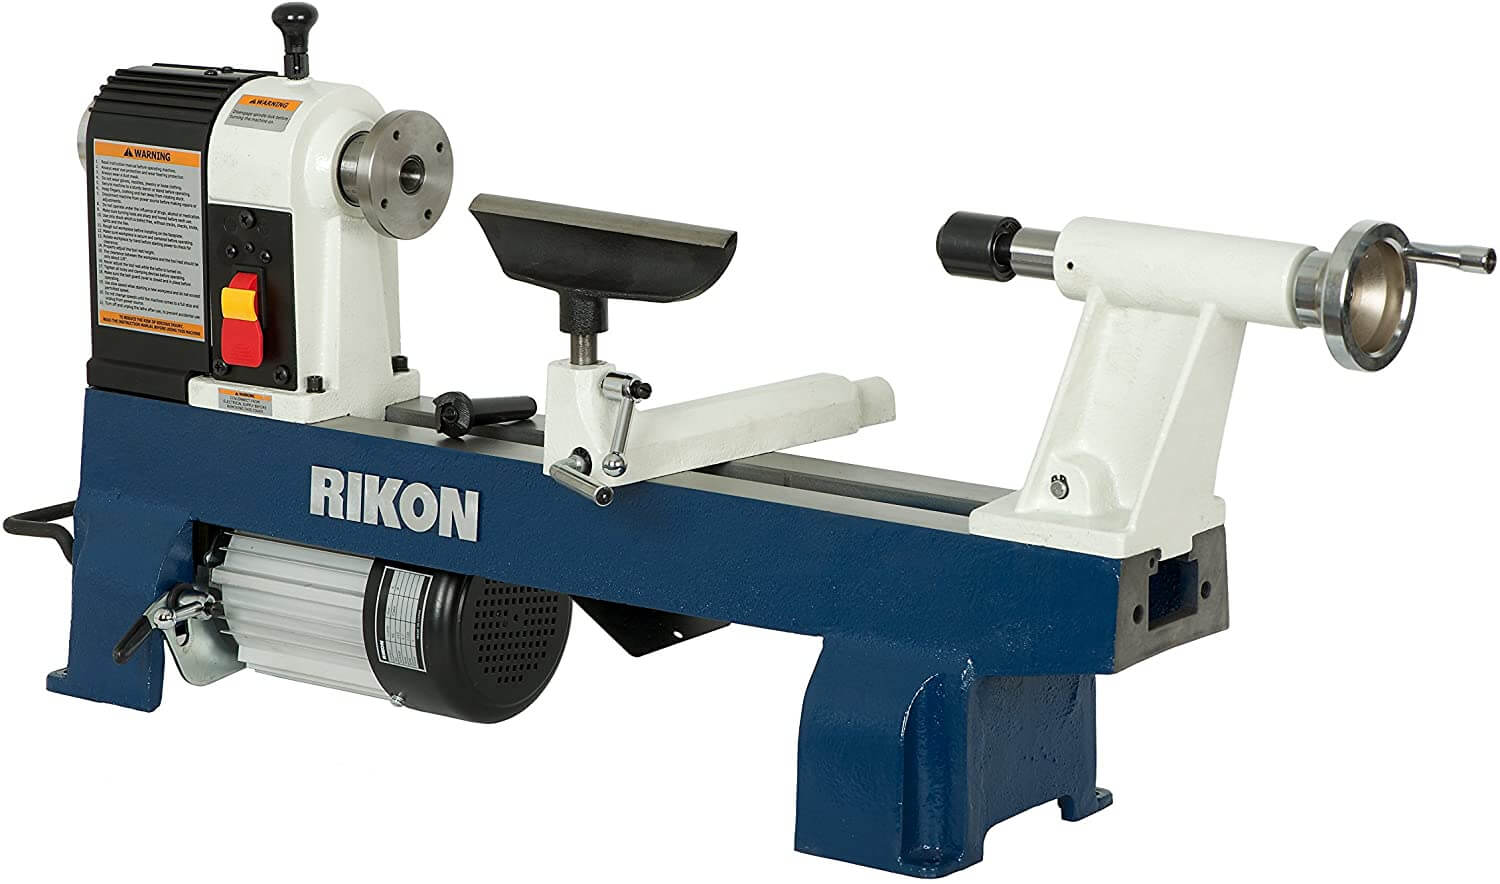 Rikon Cue lathe machine